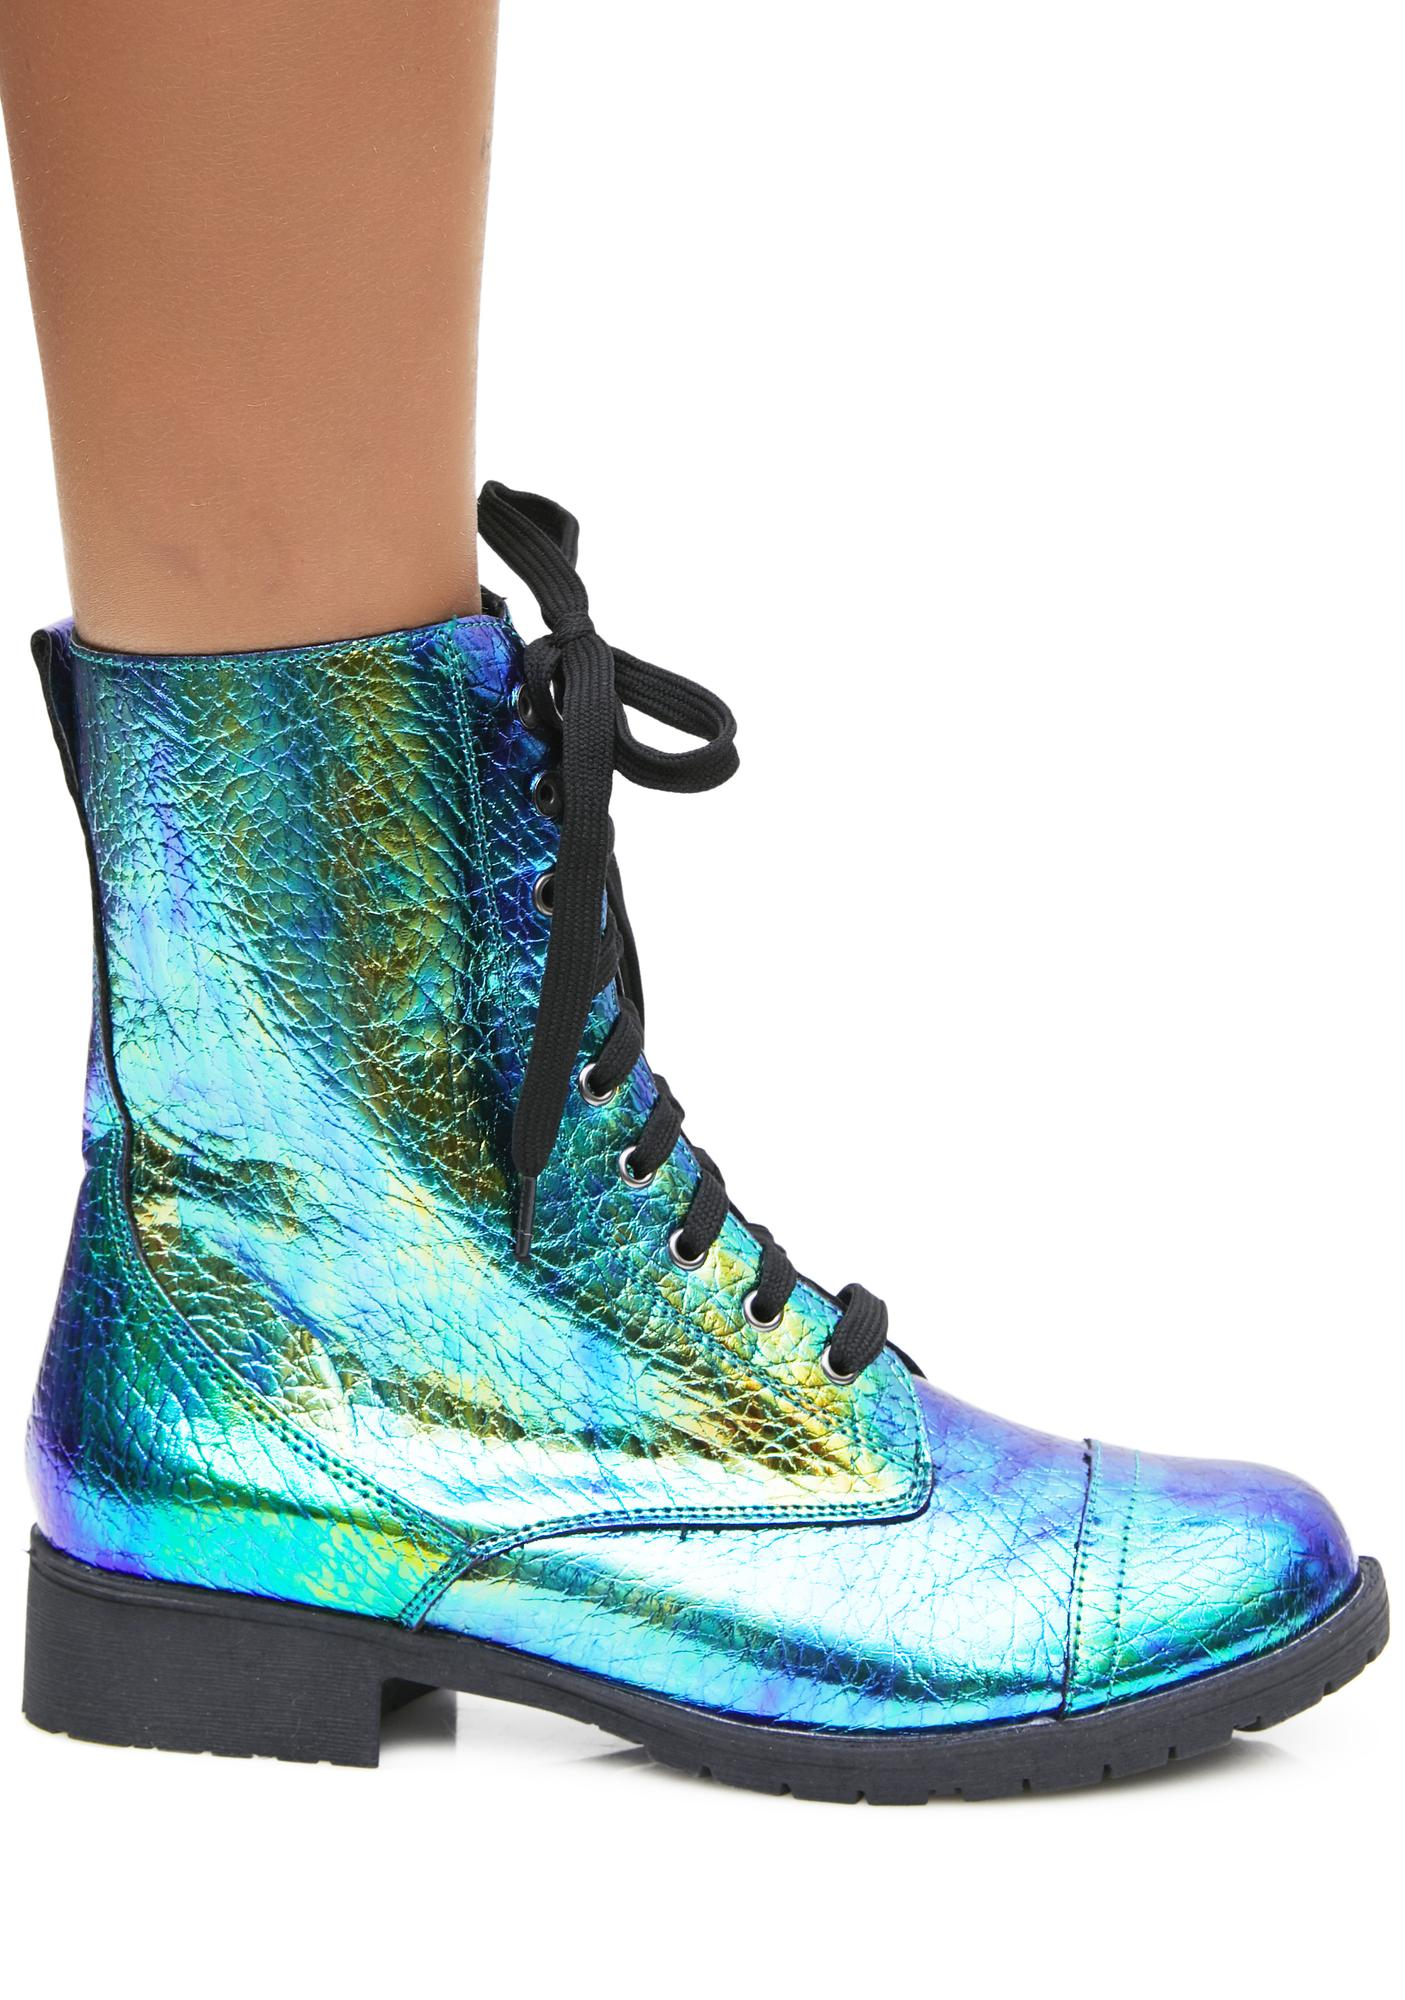 cheap sale largest supplier 100% original for sale Mermaid Tears Combat Boots clearance wide range of bjVgGdn7d7